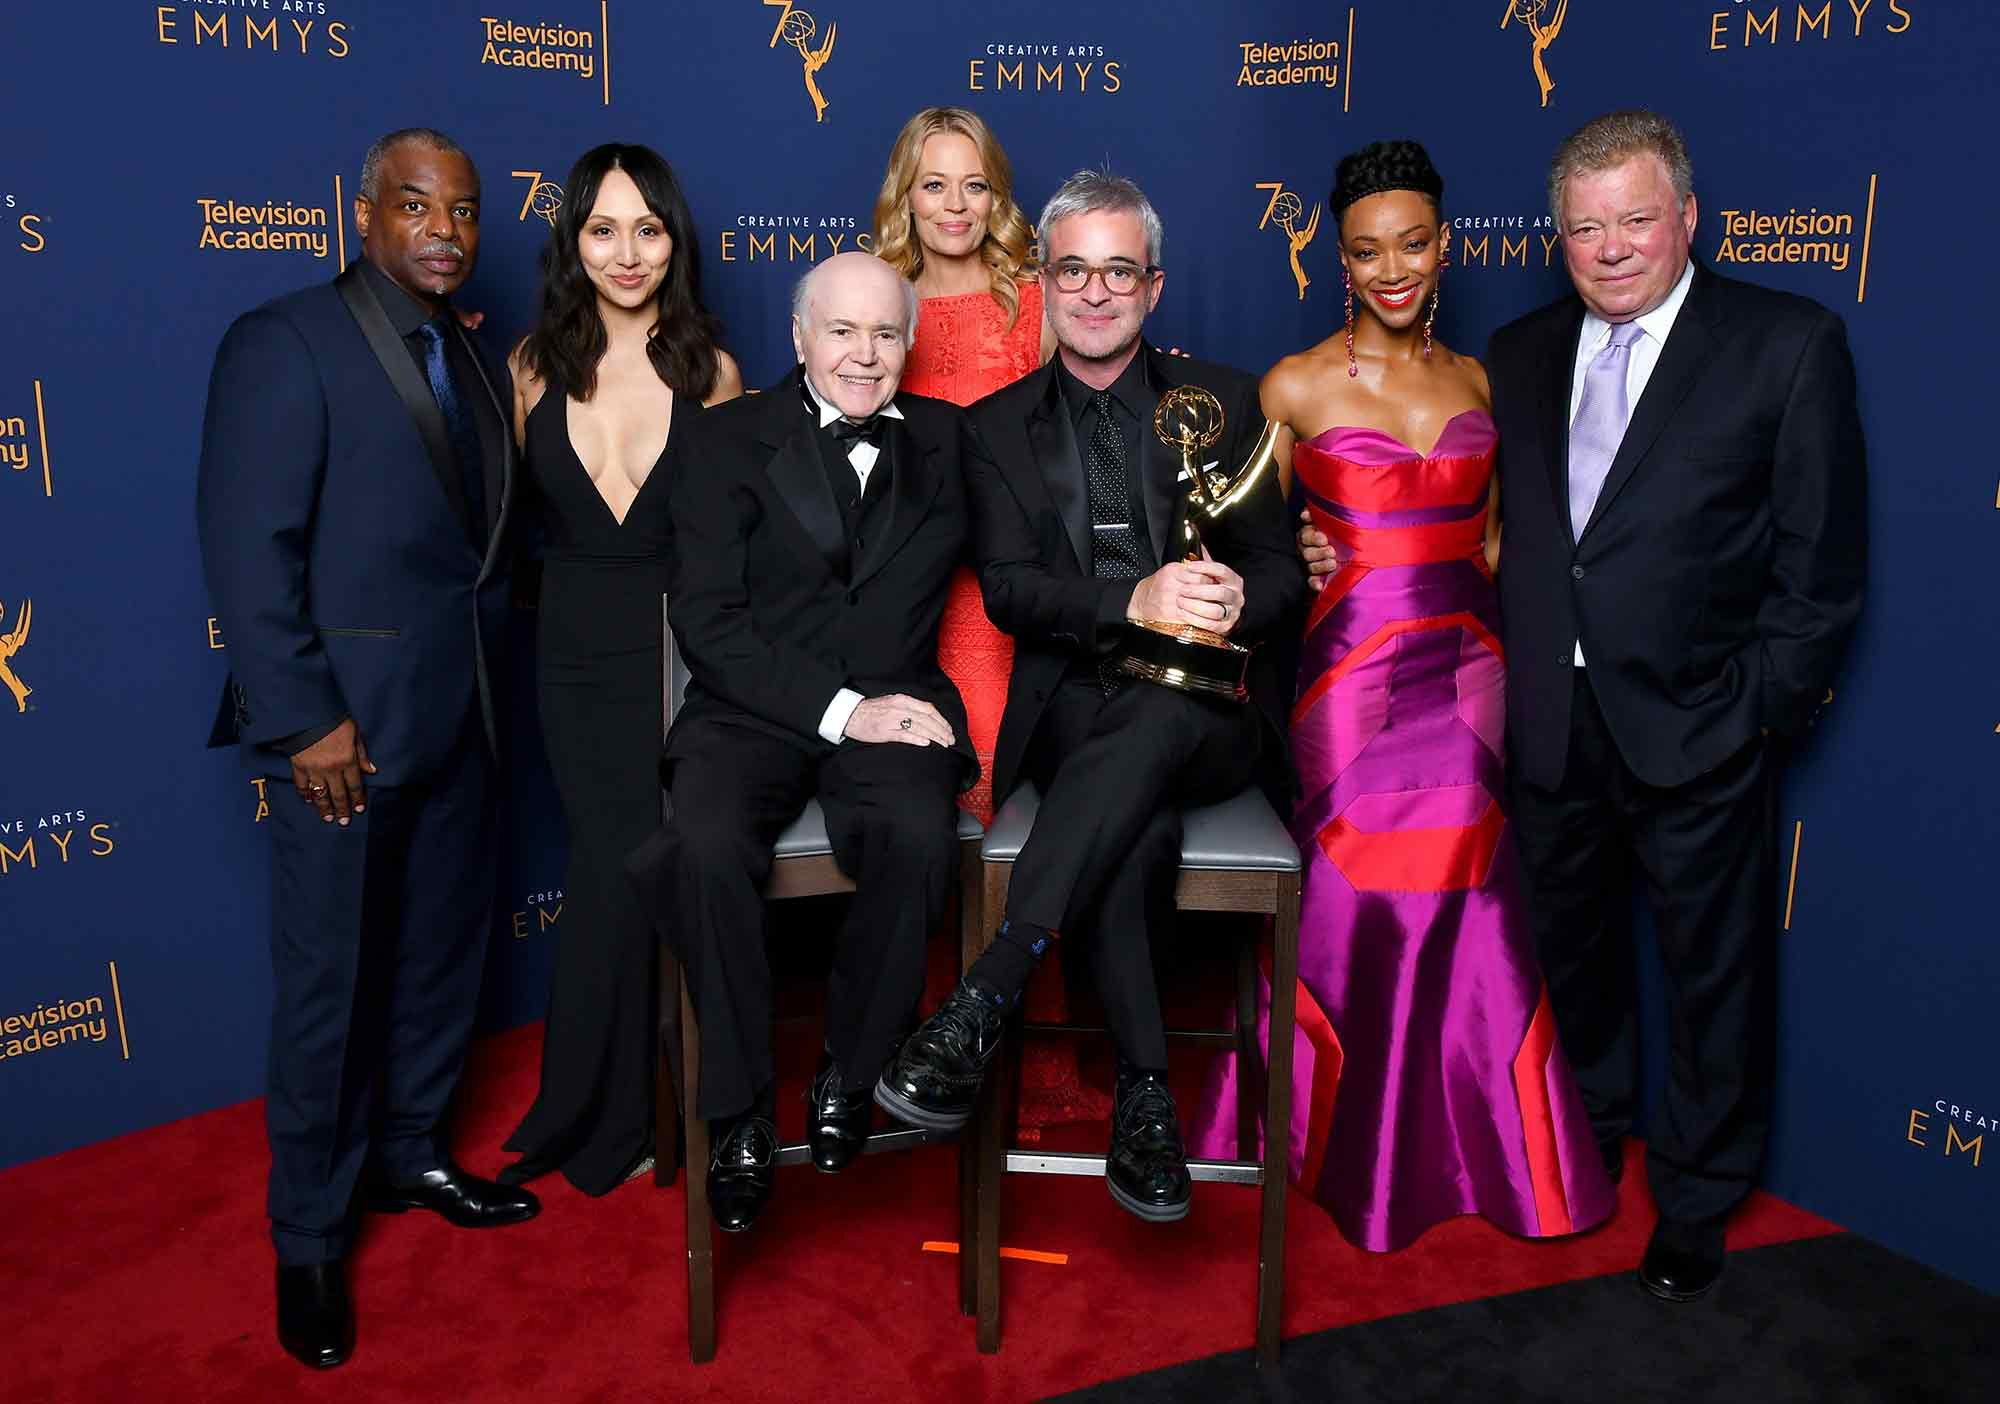 Star Trek at the Emmys